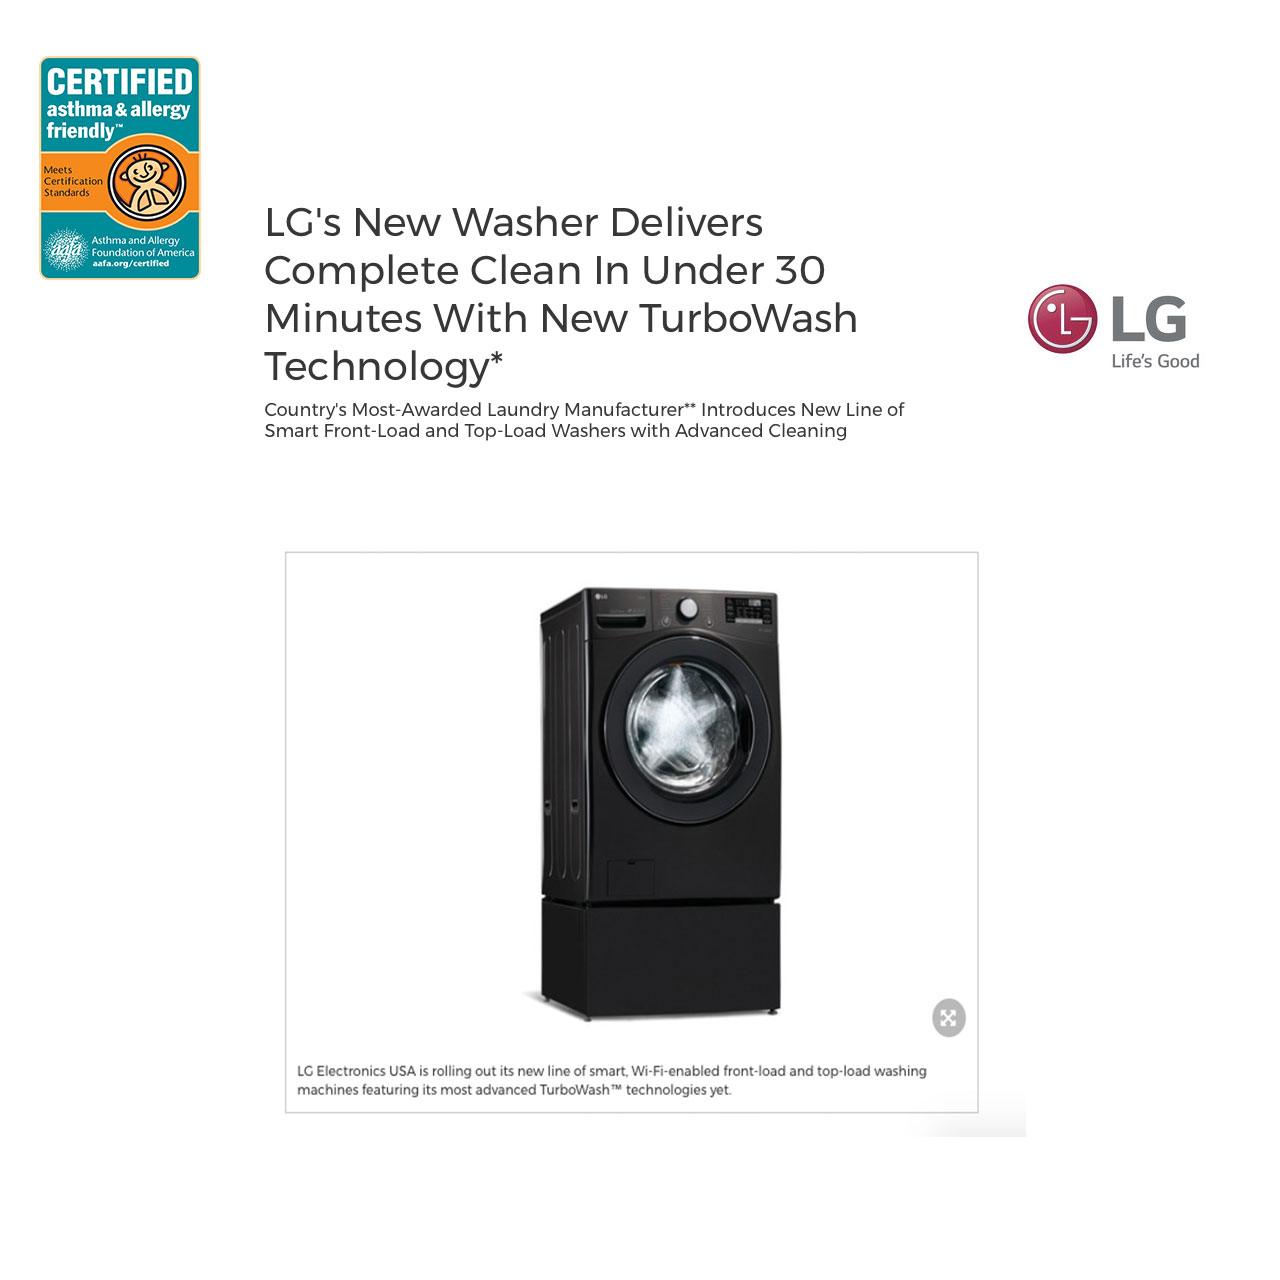 LG-New-washing-machine-certified-asthma-allergy-friendly-allergy-standards